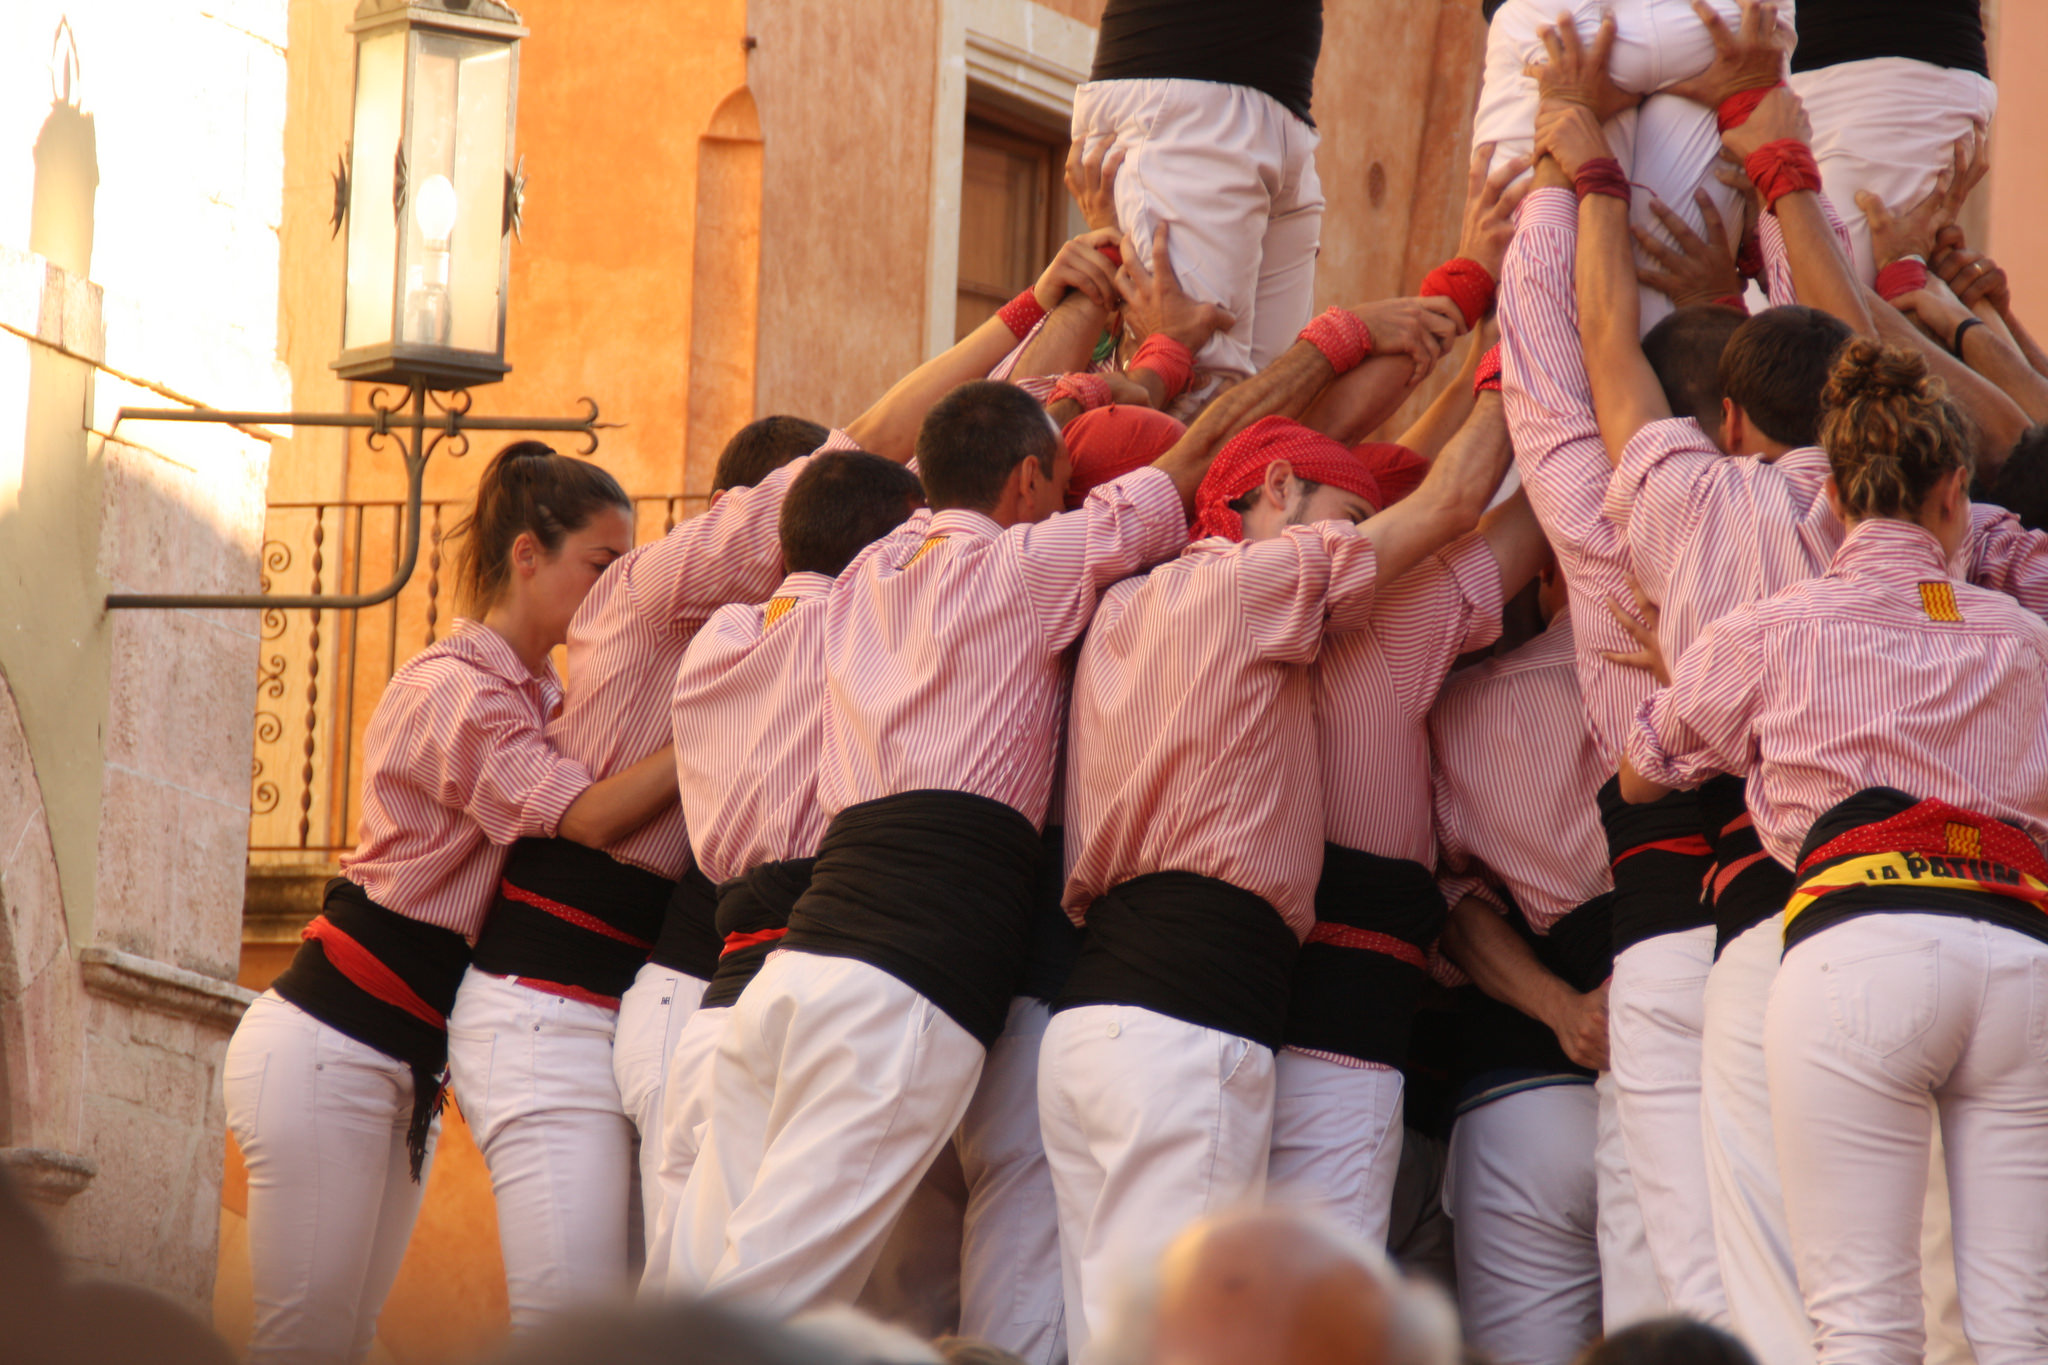 The castellers | © Quim Perelló / Flickr